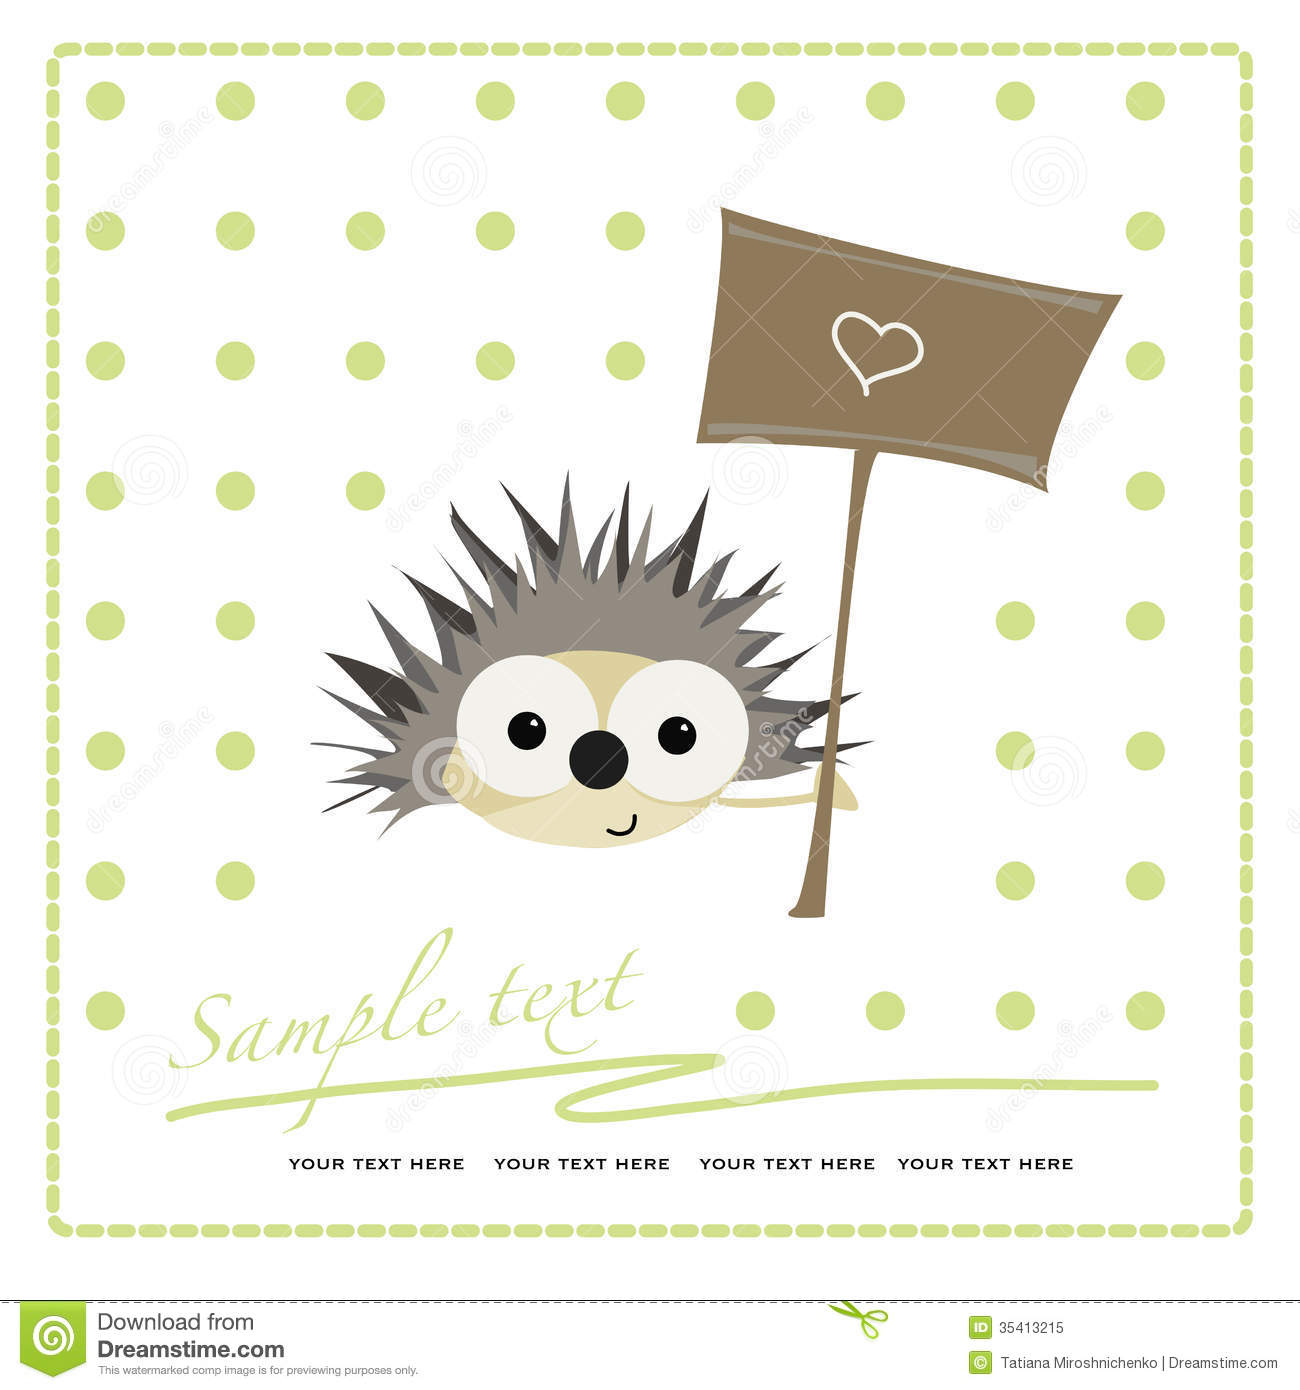 Cute Baby Girl Wallpaper Free Download Greeting Card With Funny Cartoon Hedgehog Royalty Free